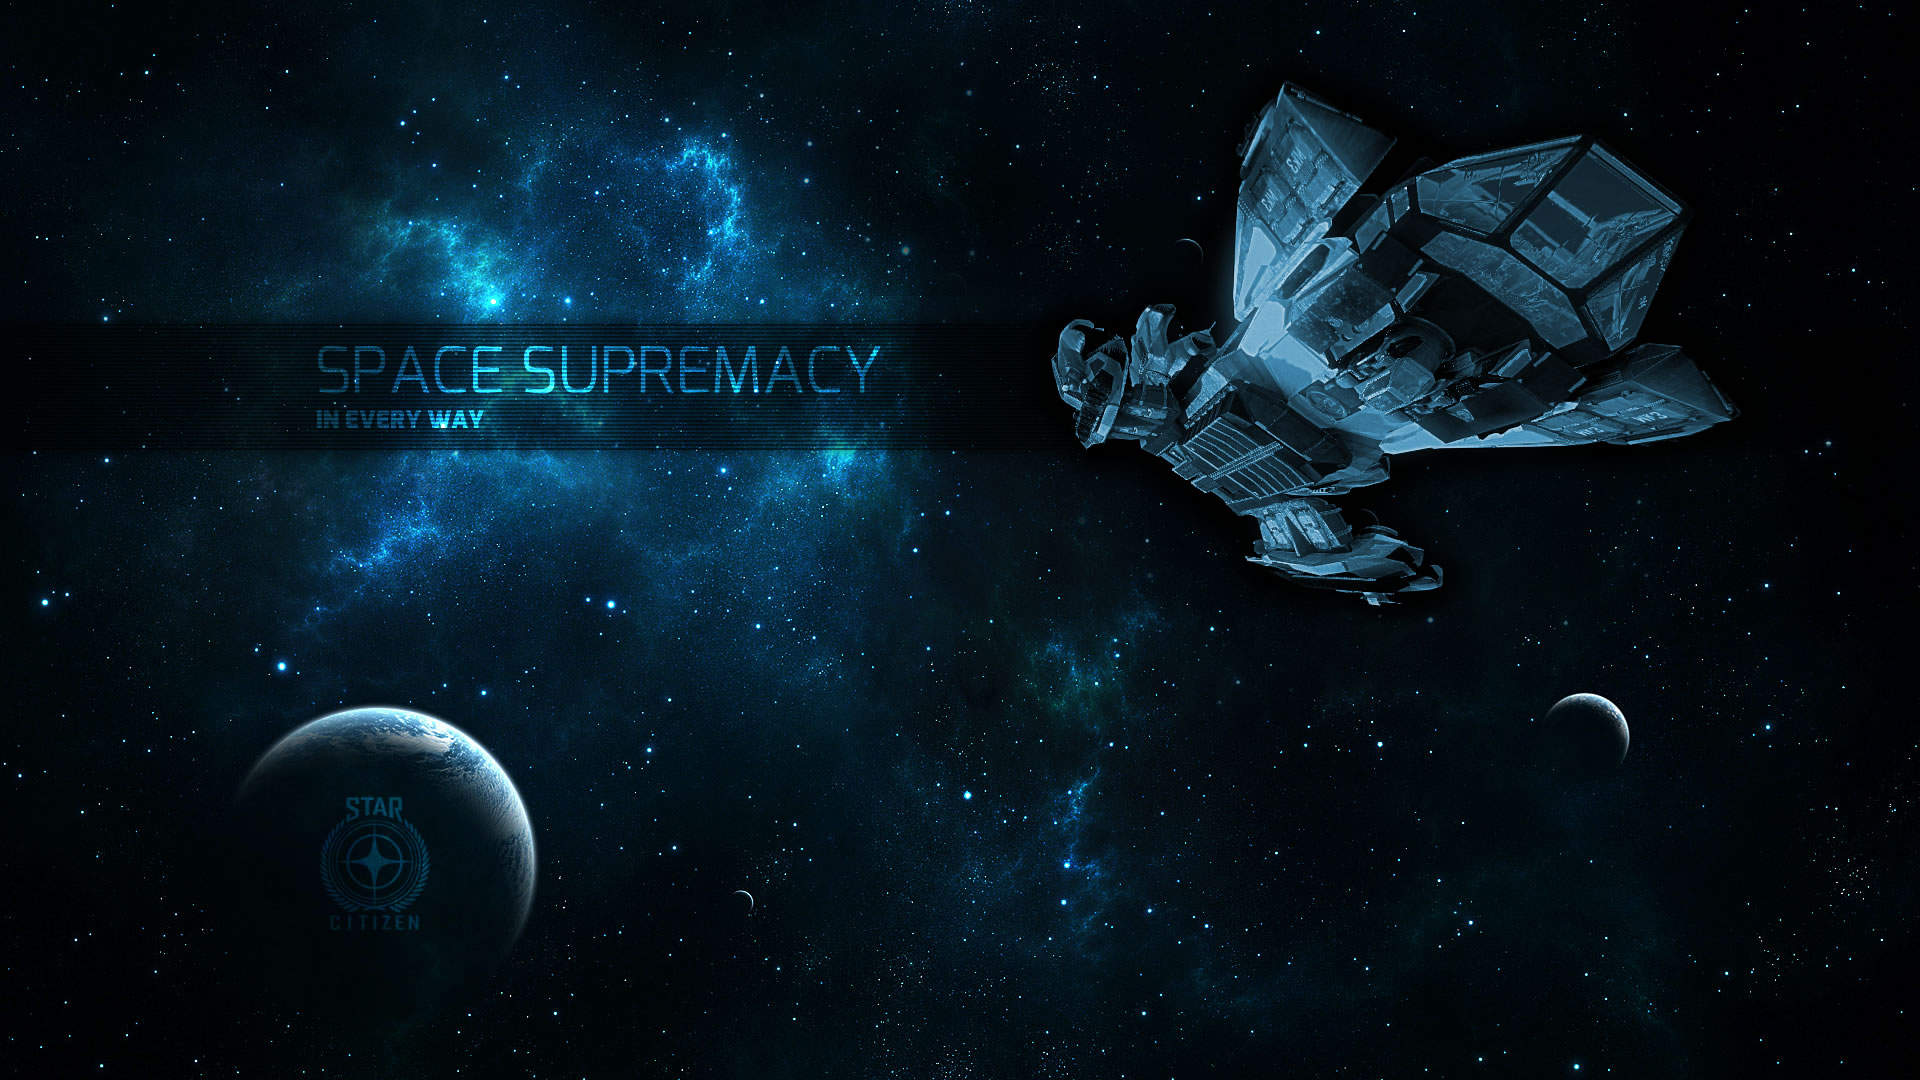 Space Supremacy Full HD Wallpaper And Background Image